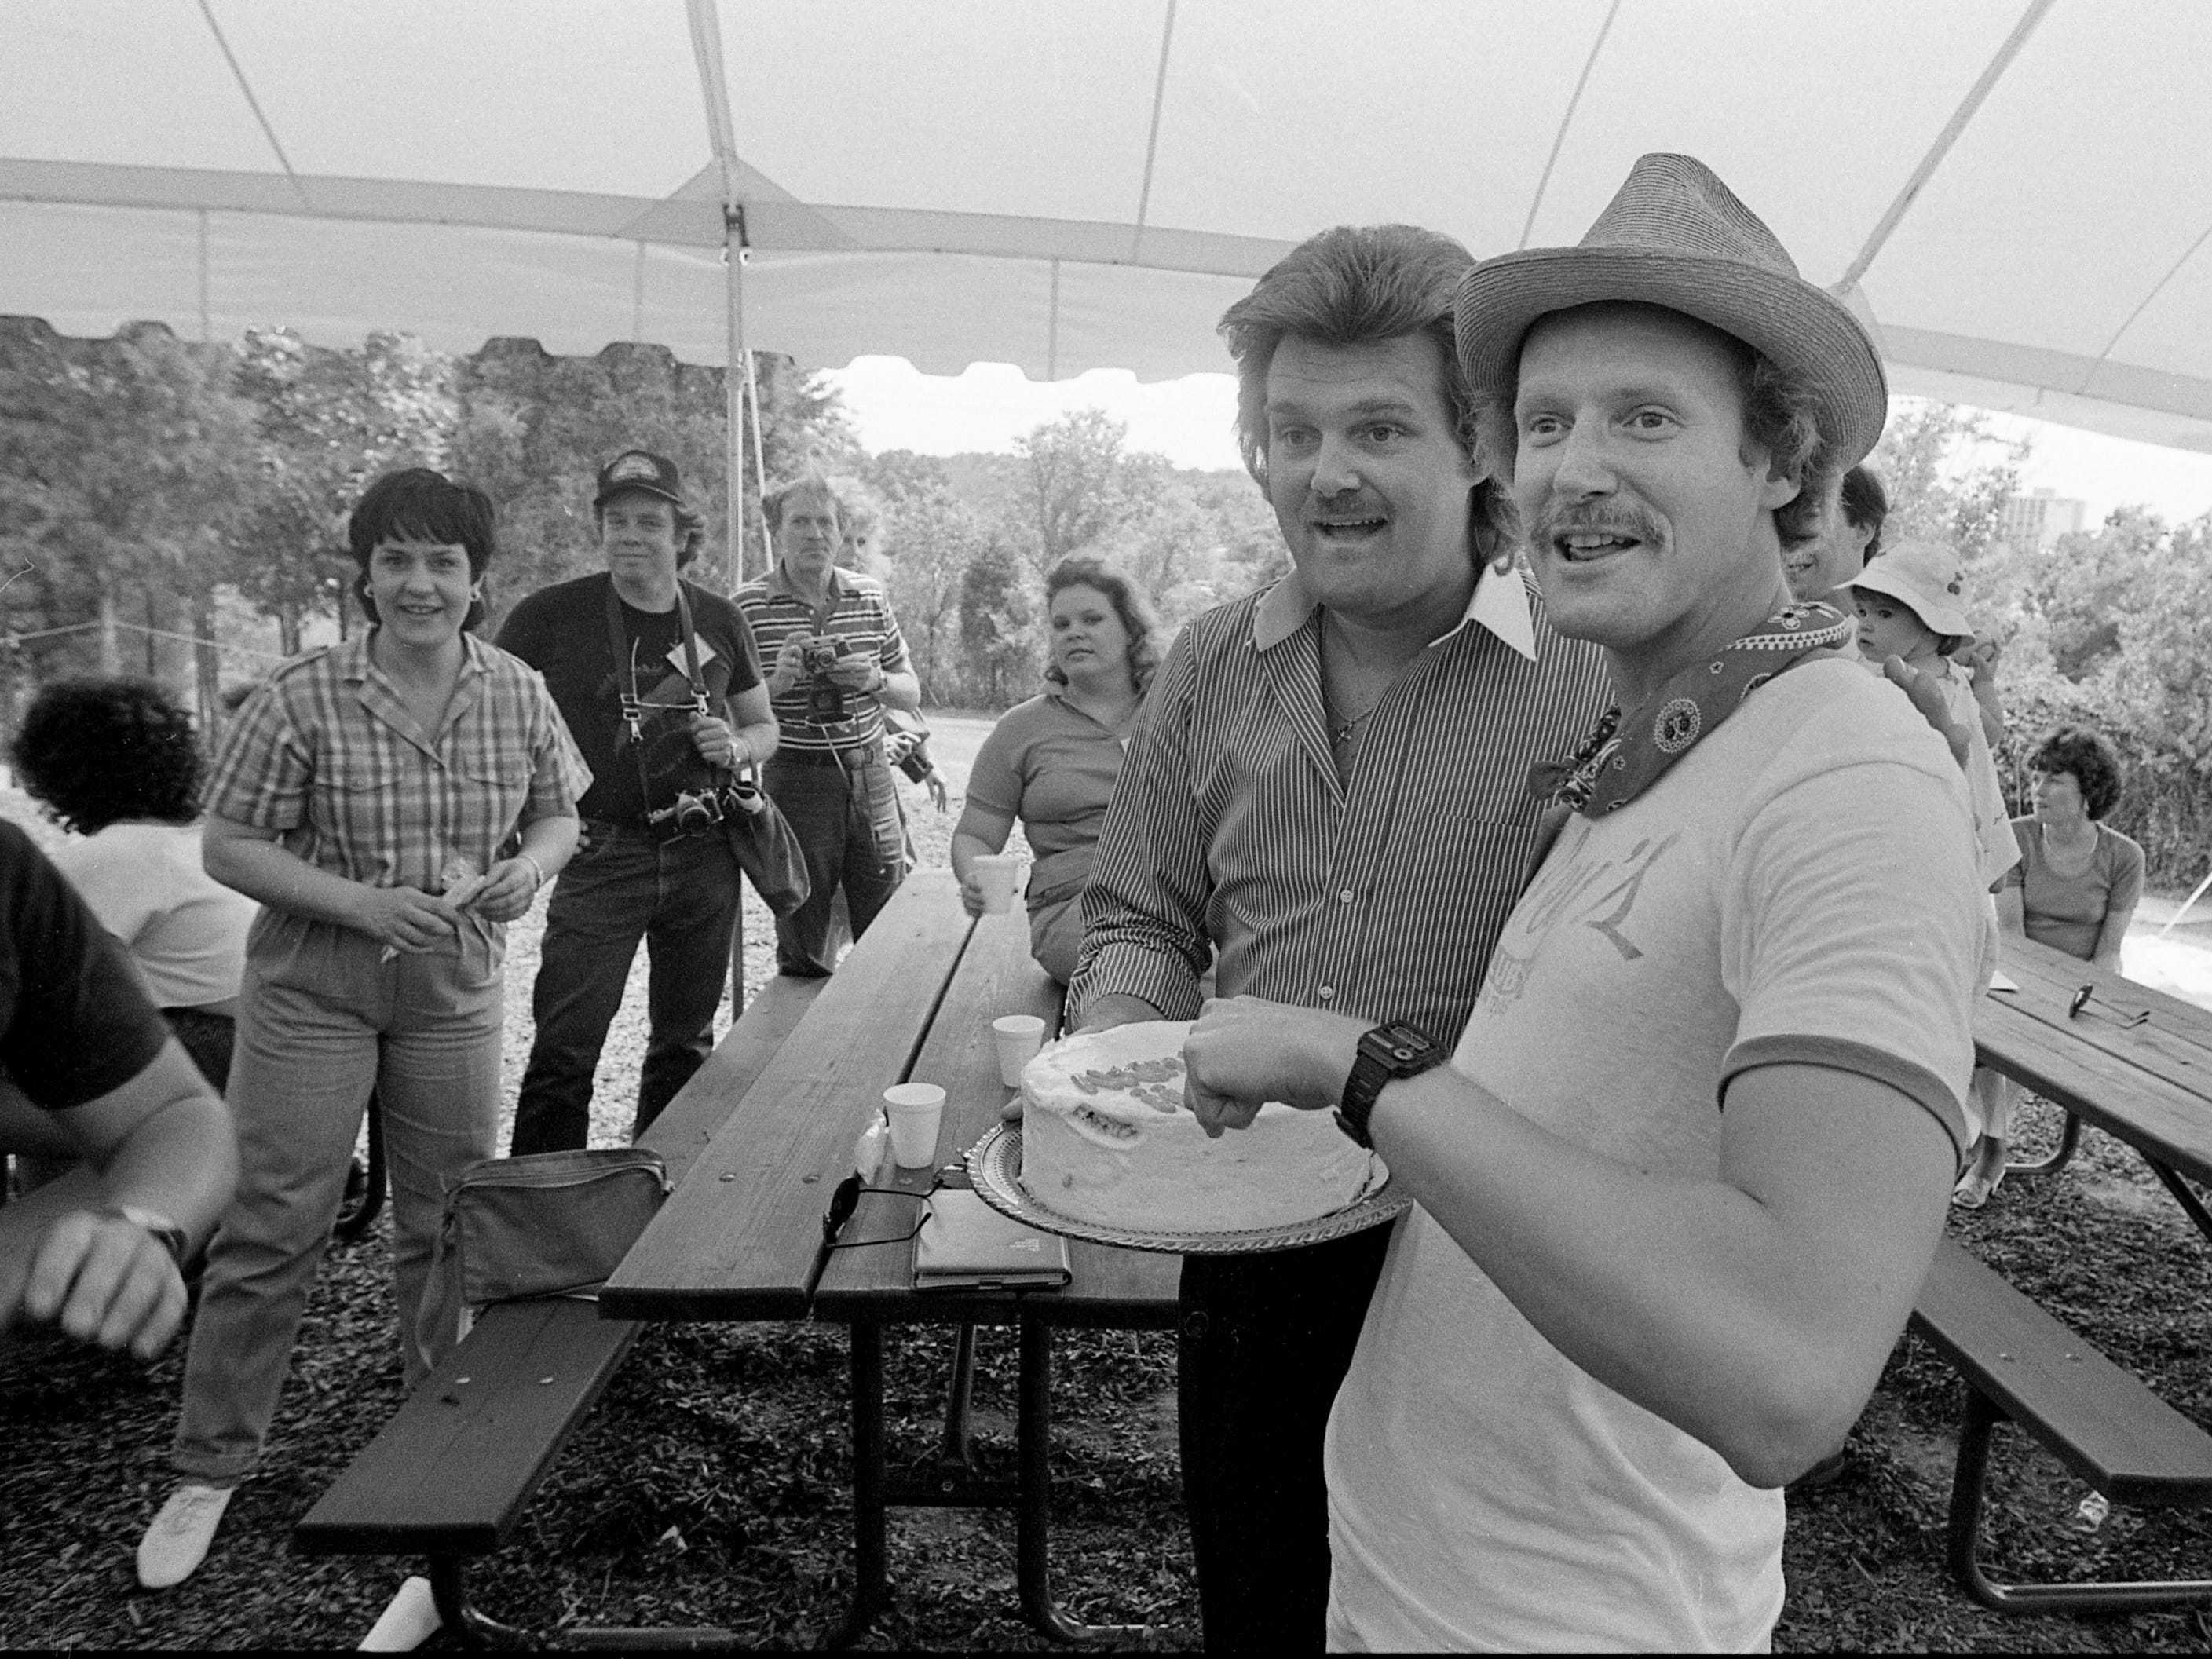 Ricky Skaggs, center, poses with Tennessean music reporter Robert K. Oermann, right, who brought a cake to Skaggs' private picnic and show for his fan club members June 6, 1984, during Fan Fair.